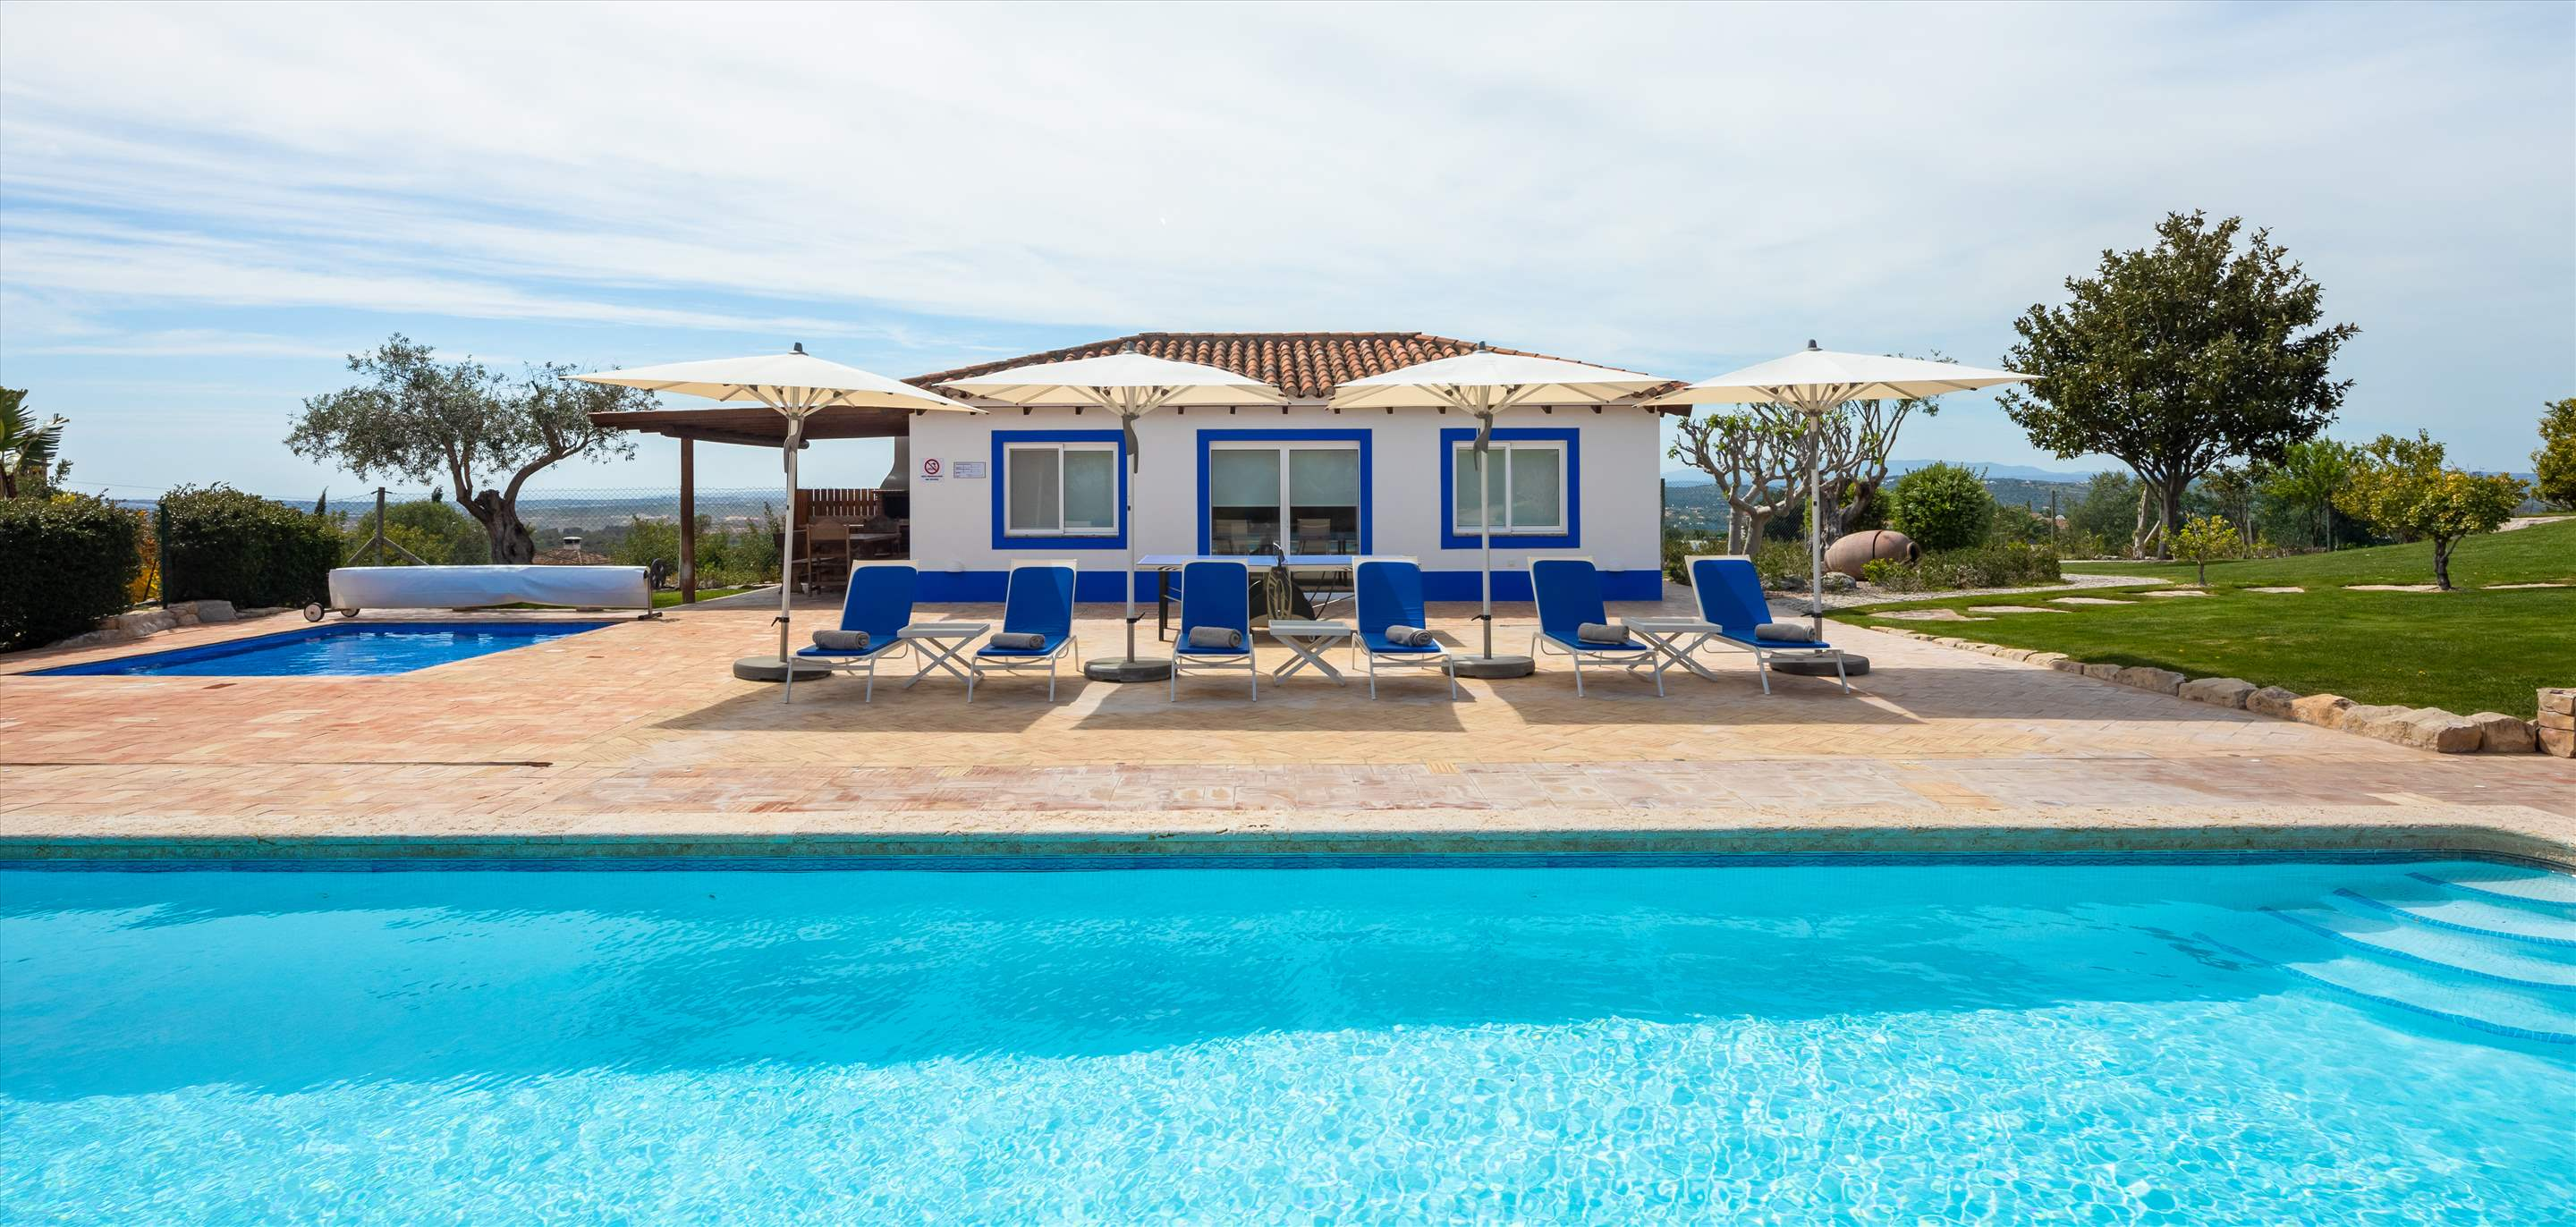 Casa da Montanha, 13-14 persons, 8 bedroom villa in Vilamoura Area, Algarve Photo #15